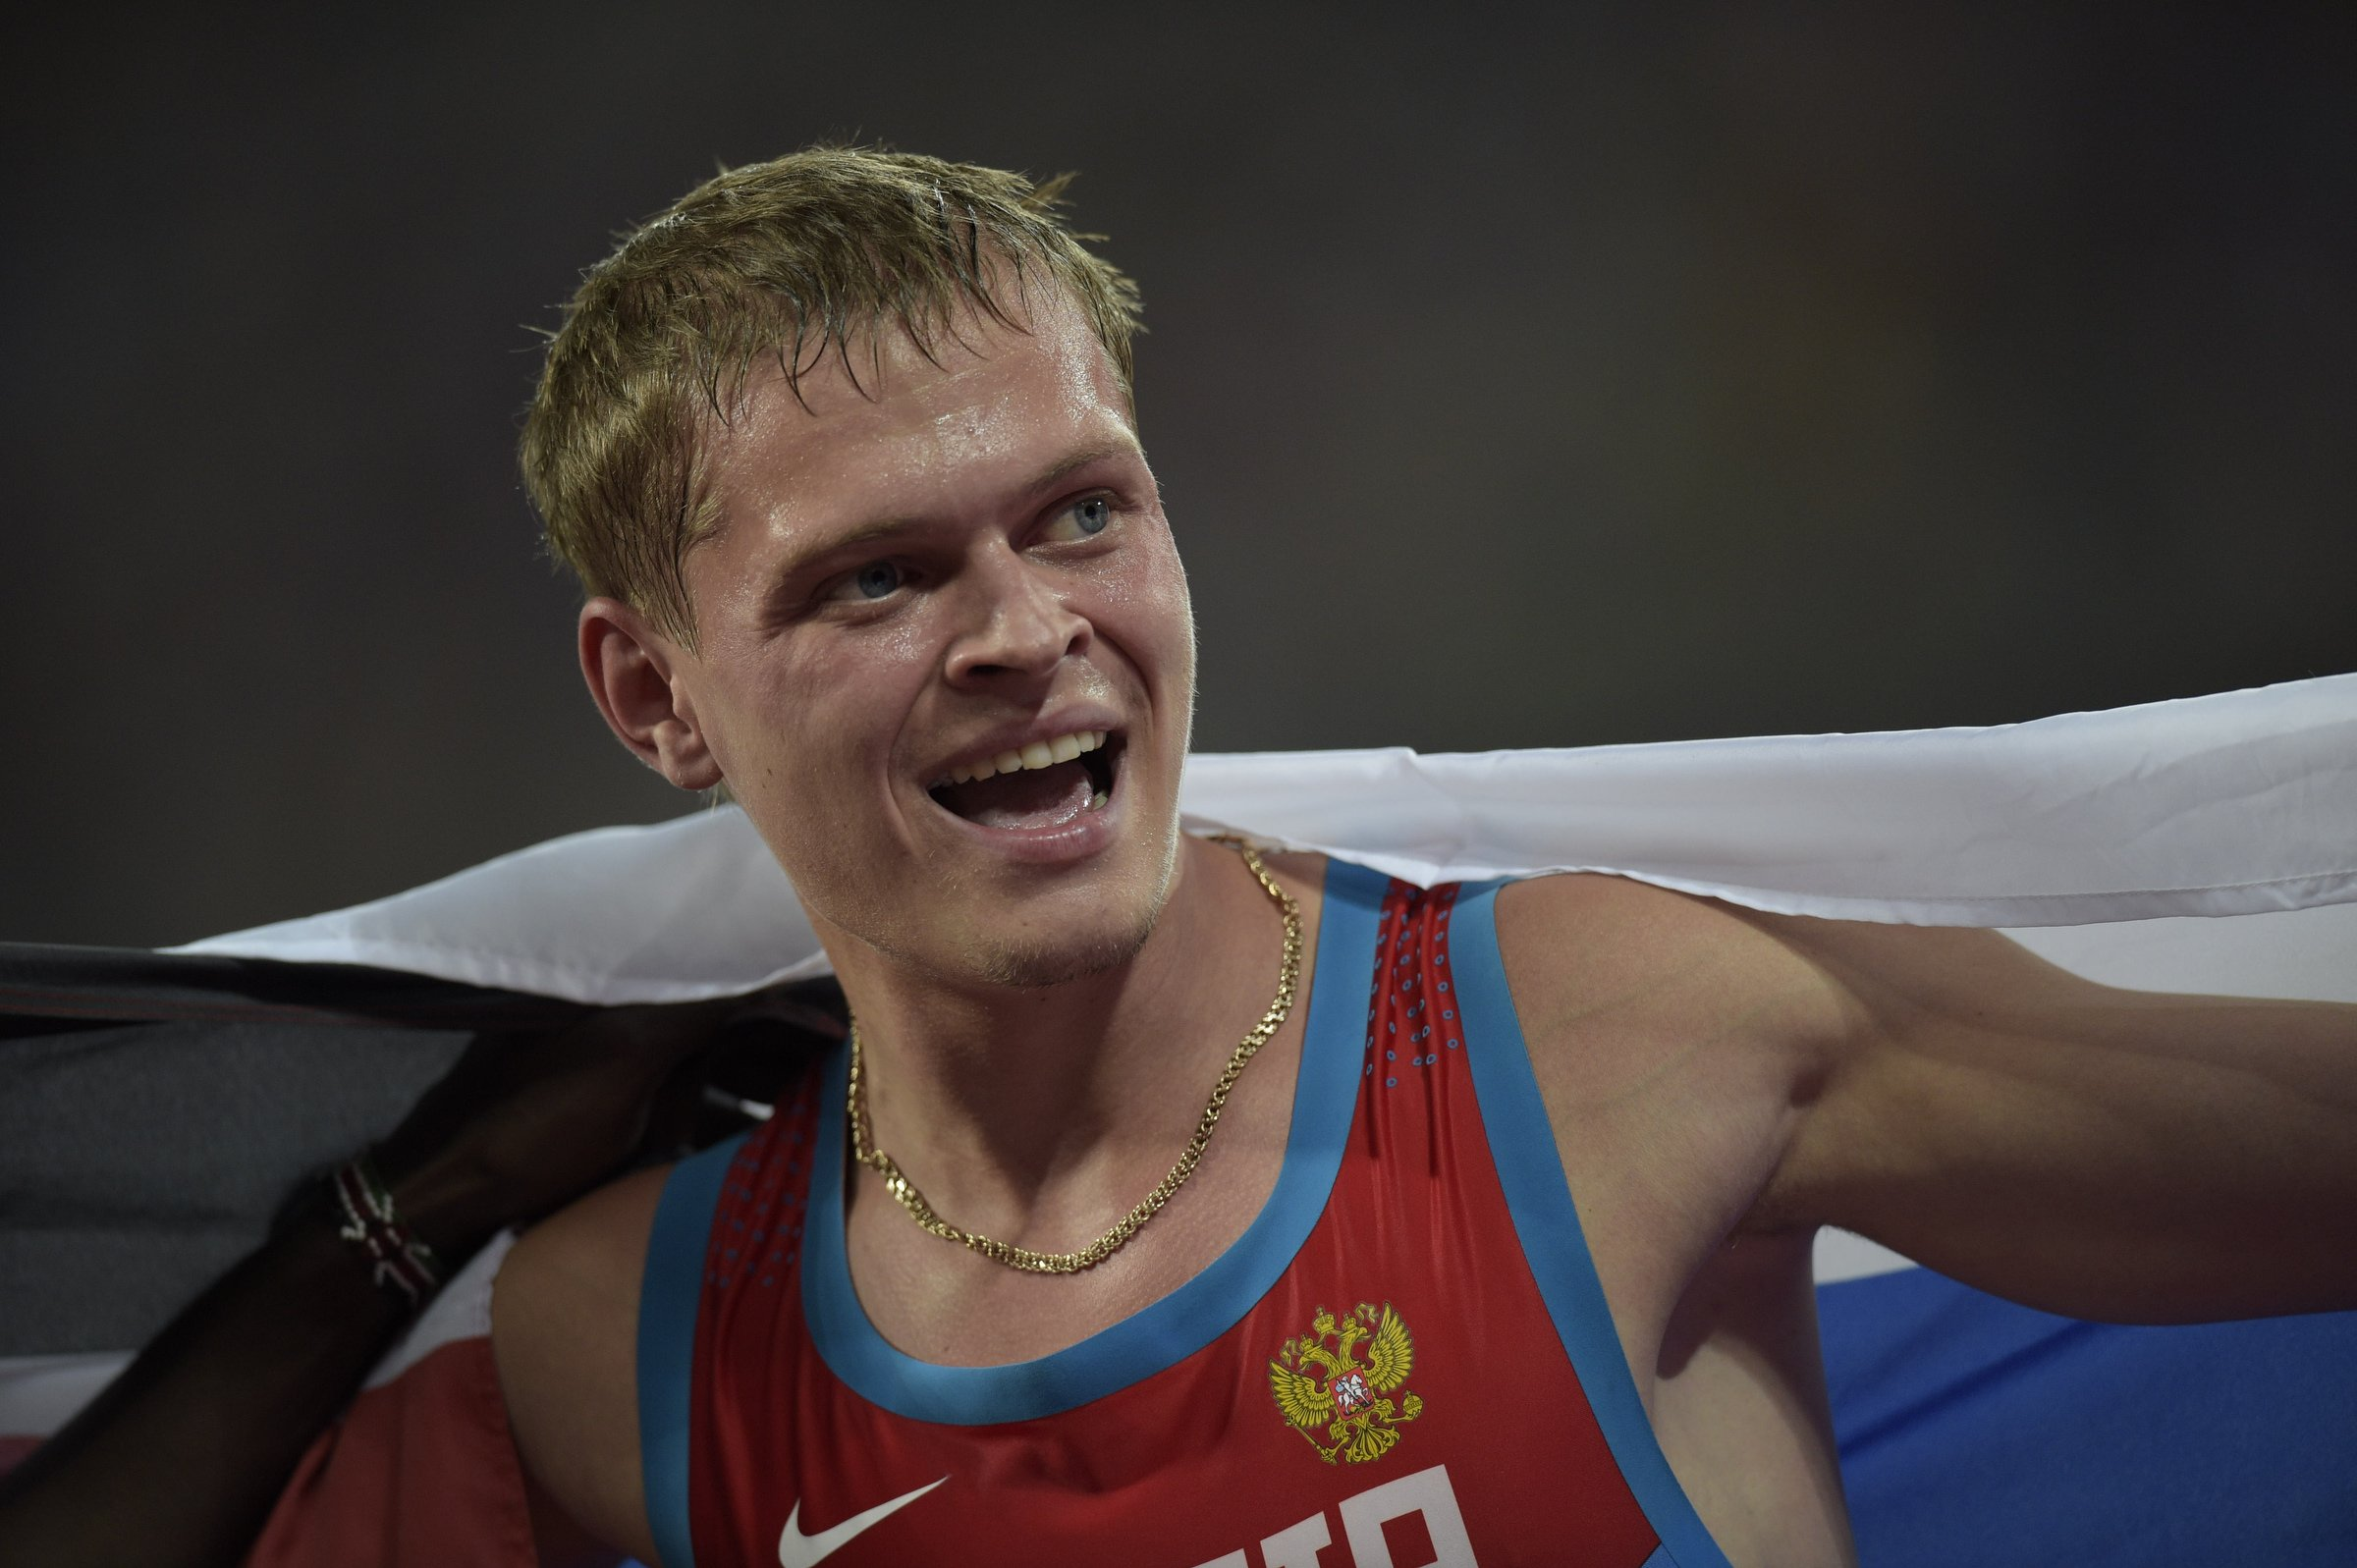 Denis Kudryavtsev (RUS) is all smiles after taking silver in the men's 400-meter hurdles.